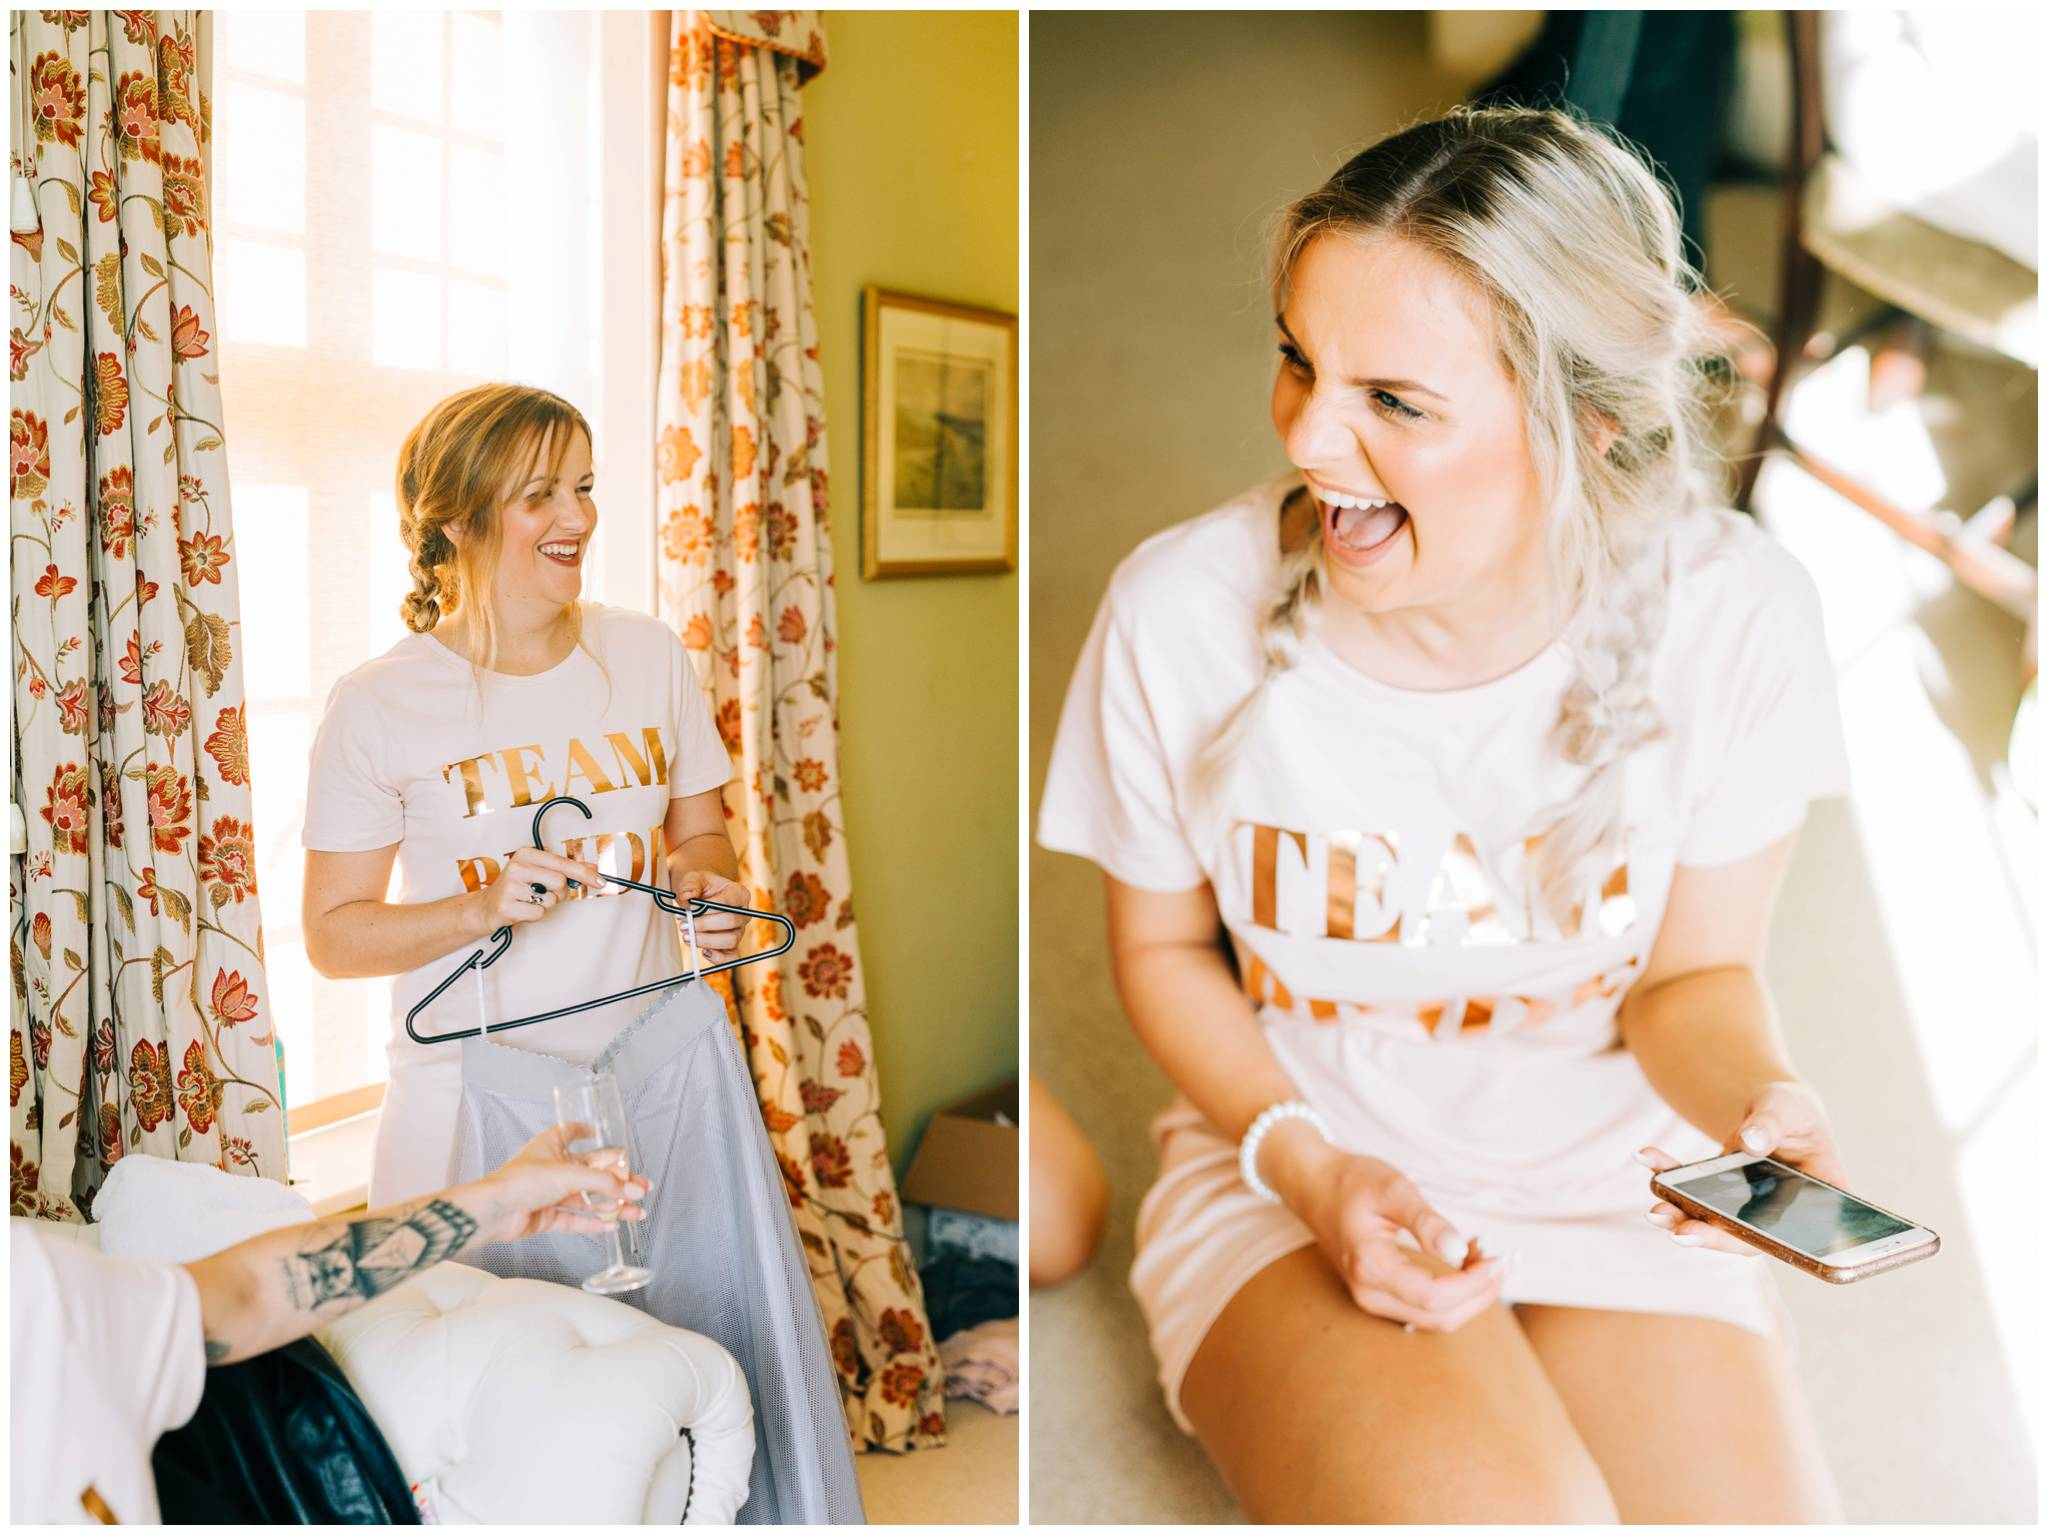 Natural wedding photography Manchester - Clare Robinson Photography_0220.jpg